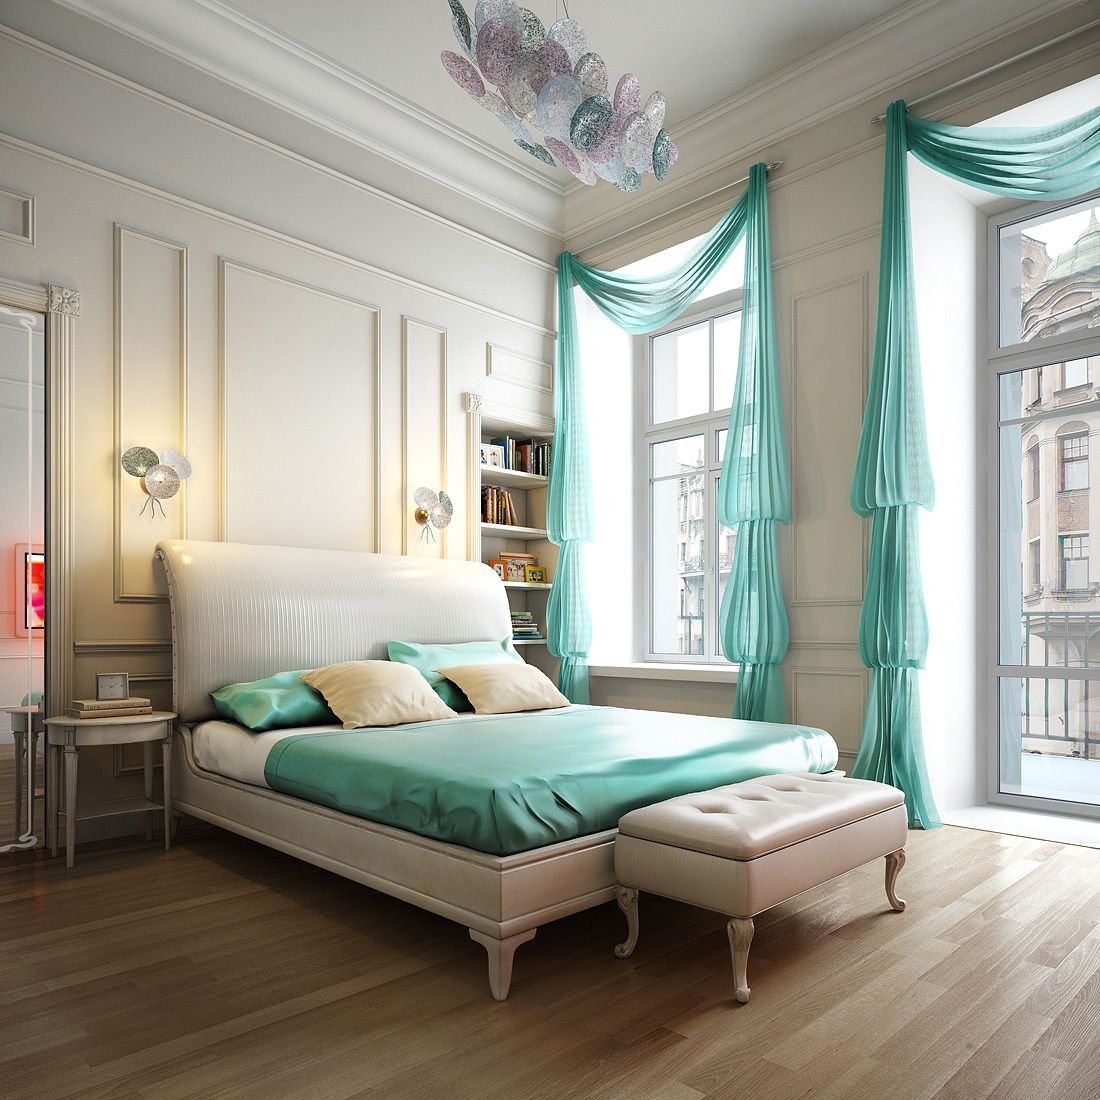 Bed near window design  architecture in this room is beautiful and the windows are so lovely